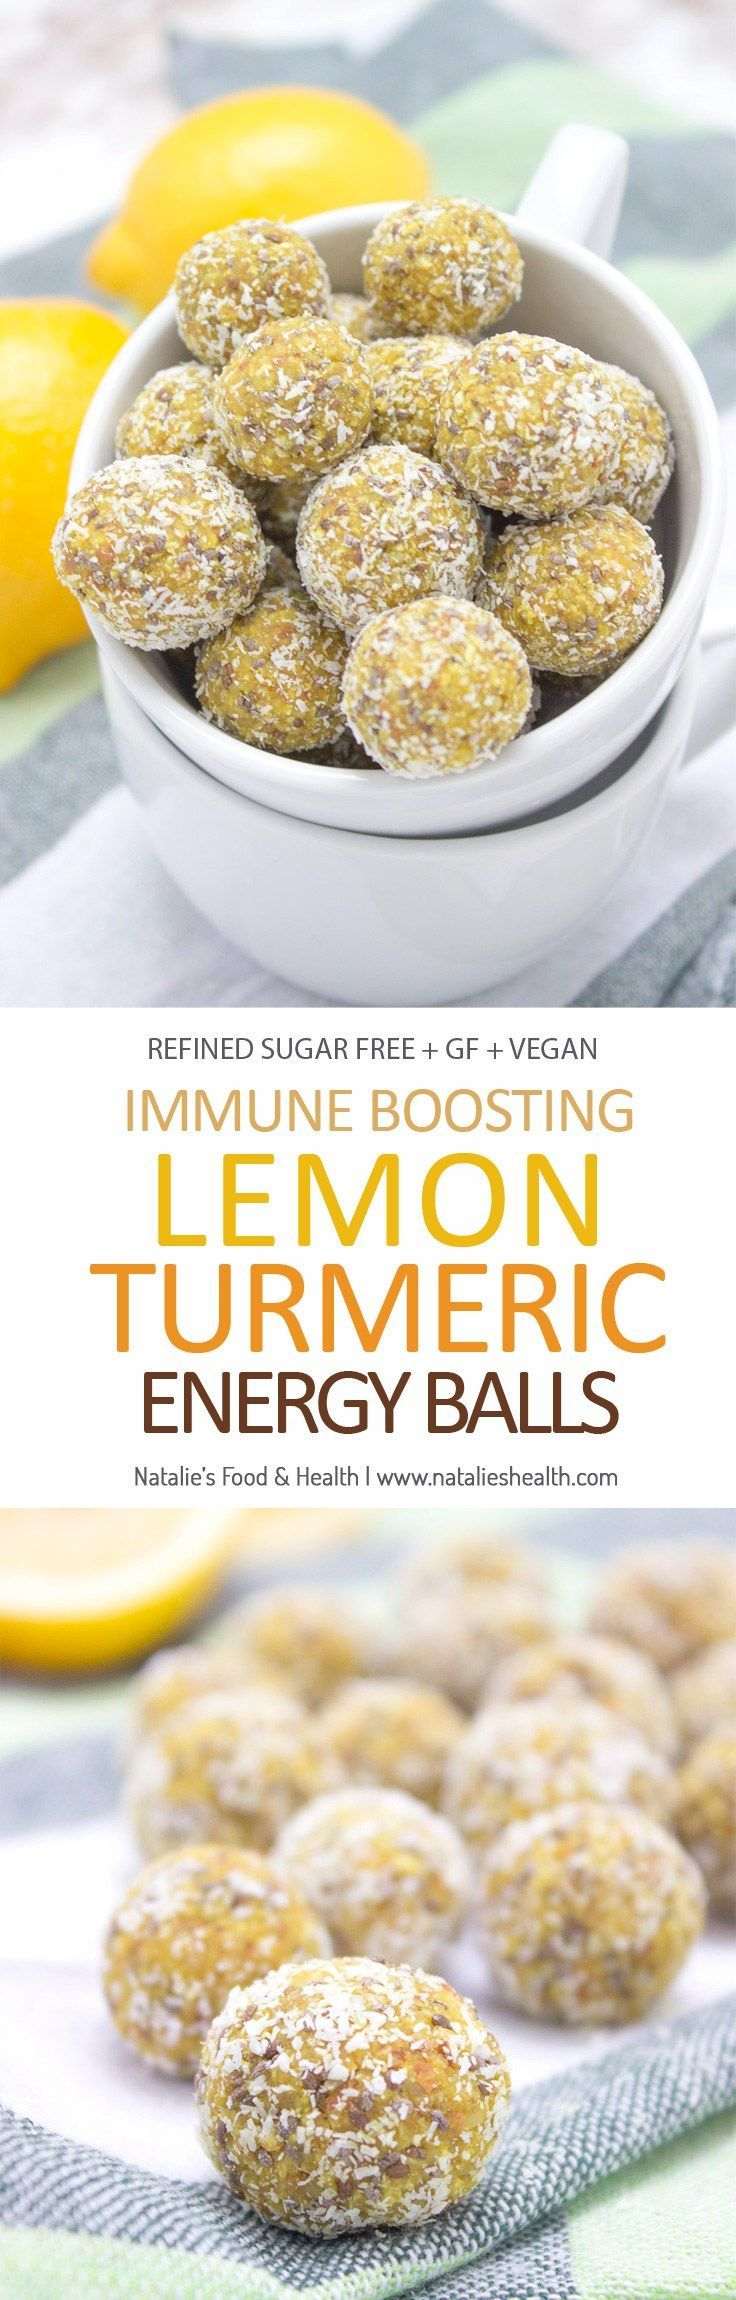 Immune boosting, refined sugar-free energy balls are rich in fibre and plant-based proteins.